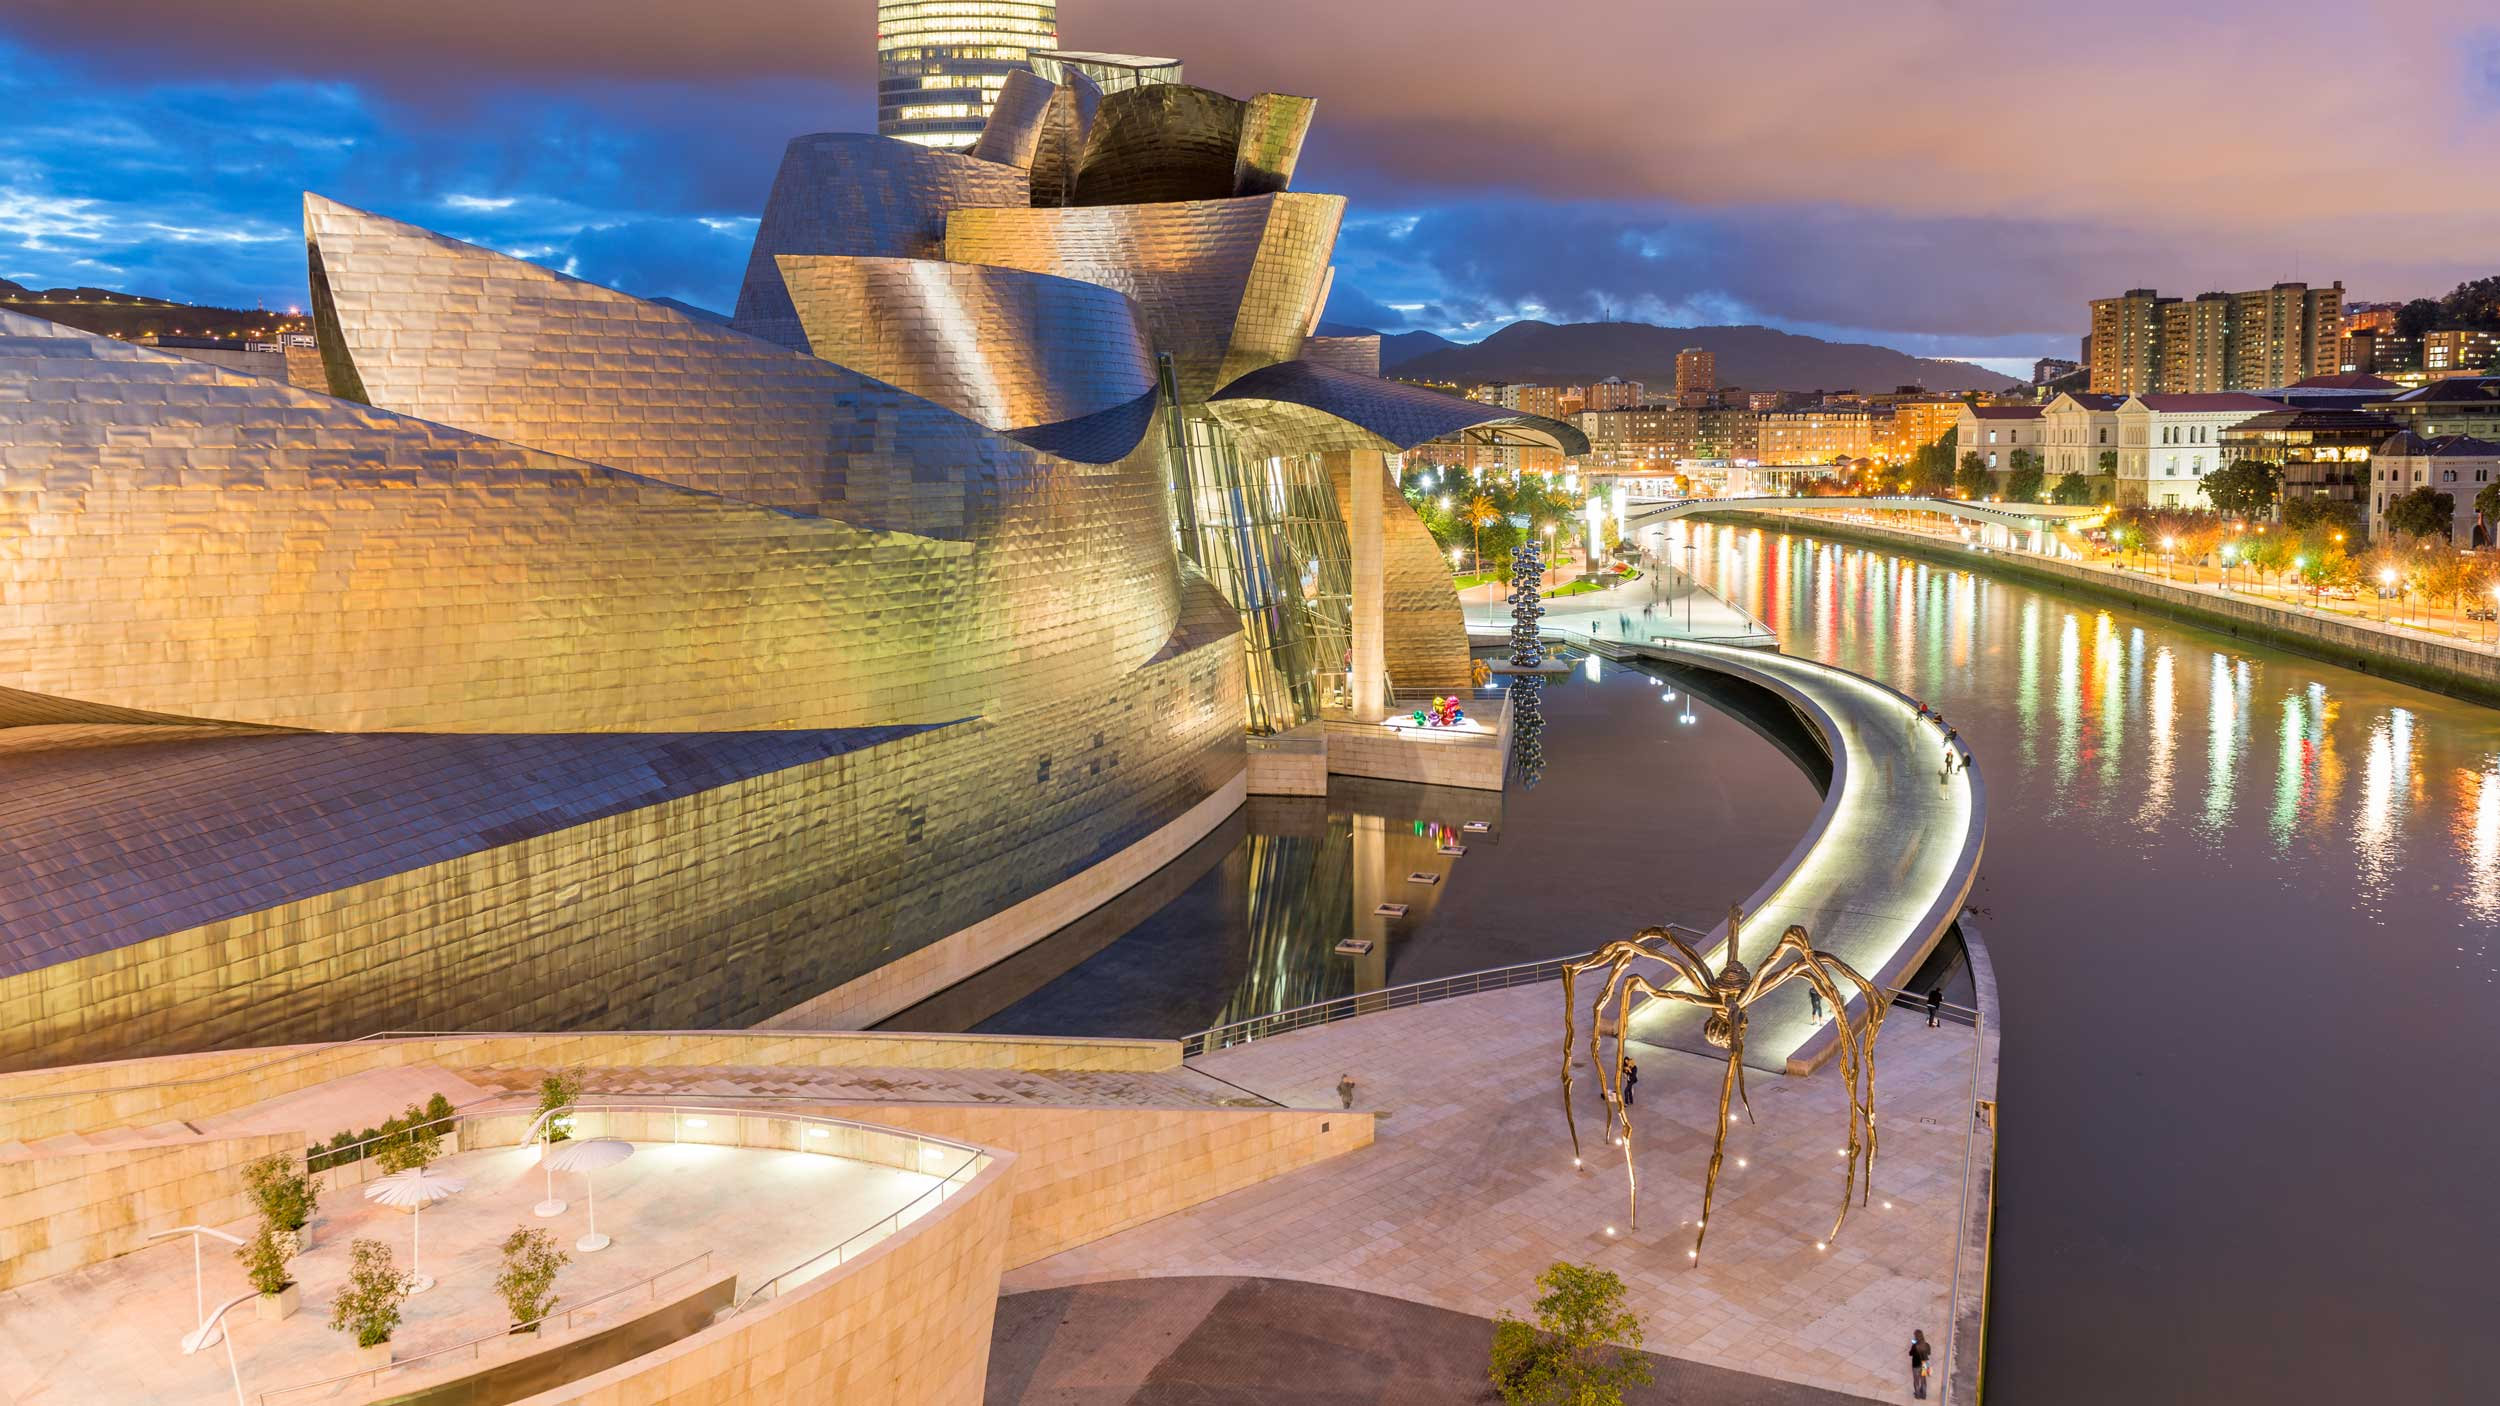 An undulating building on the banks of a river, Bilbao, Spain